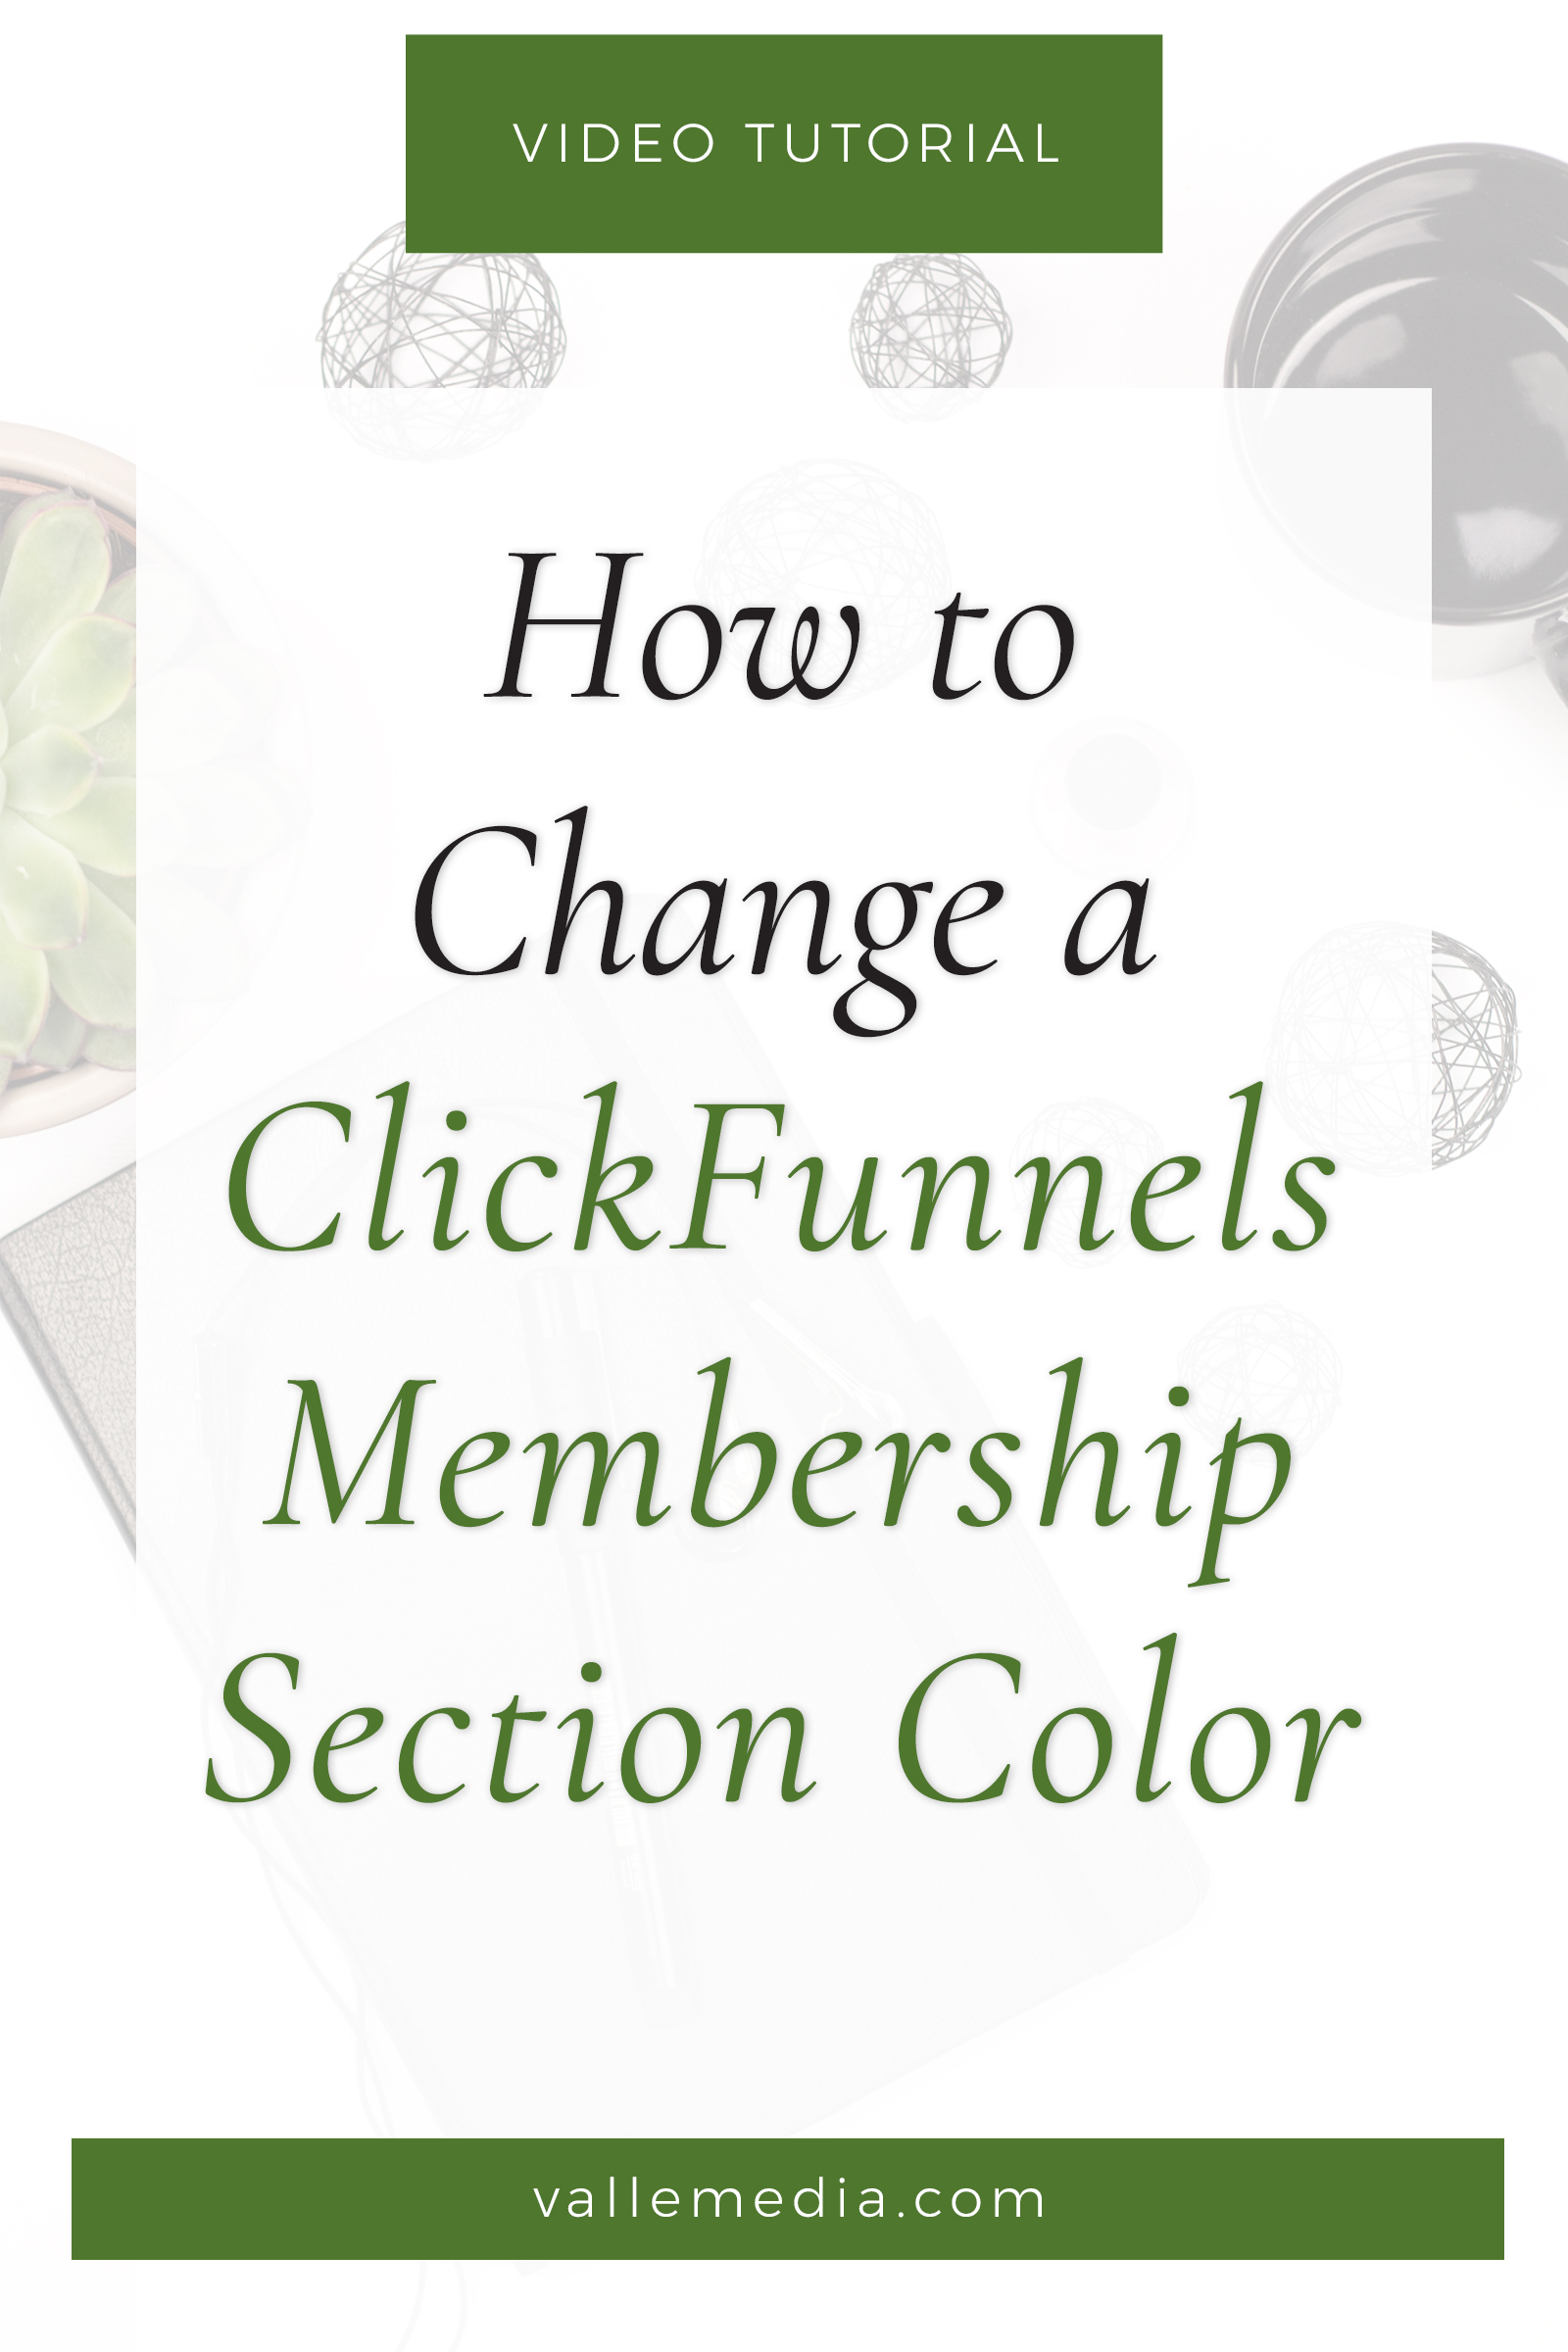 Step-by-step how to adjust the ClickFunnels membership section colors individually for a more on-brand look. Let's add a little personality to your learning area!